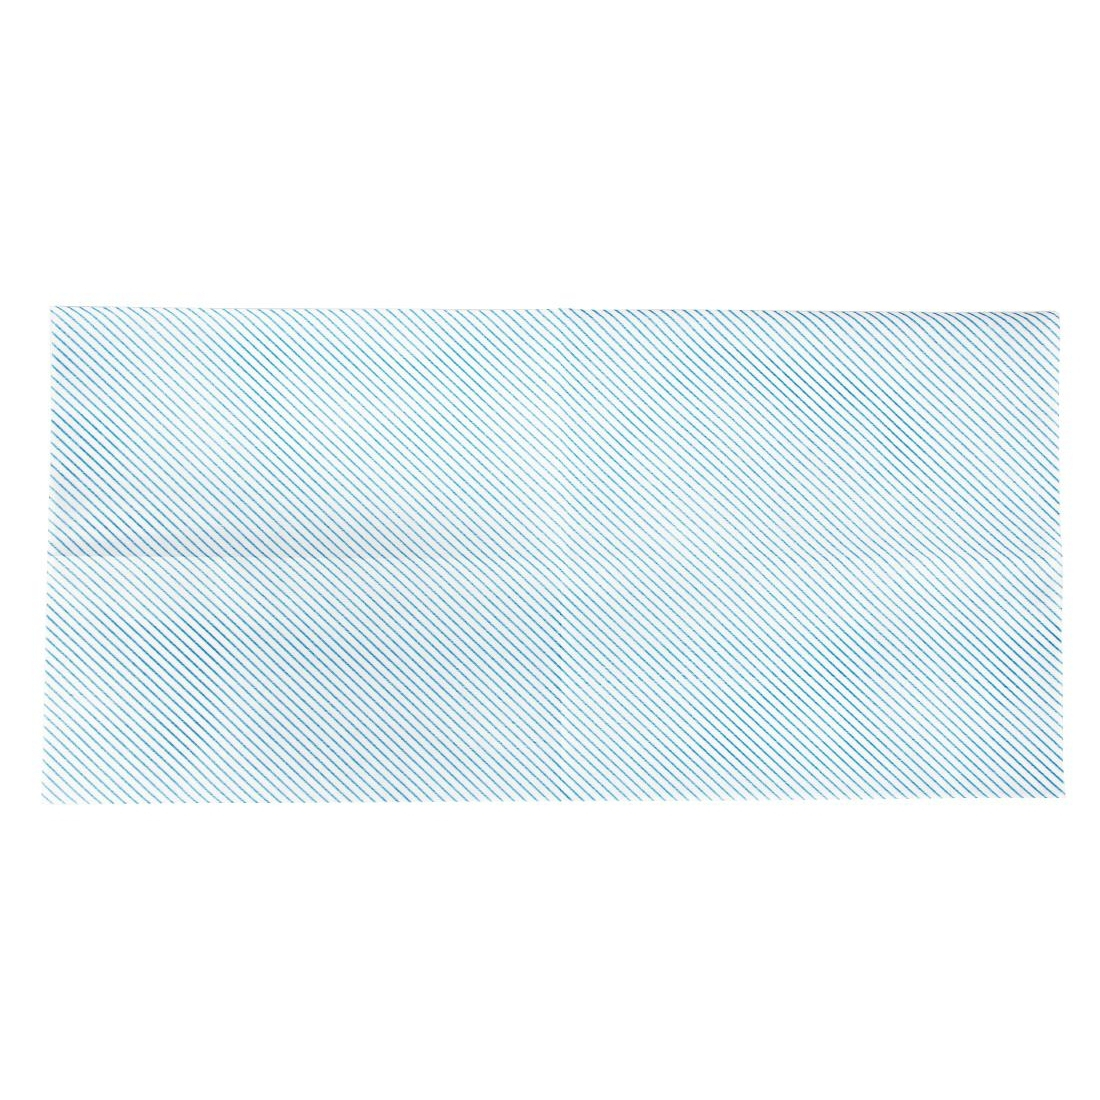 Jantex Solonet Cloths Blue Pack of 50